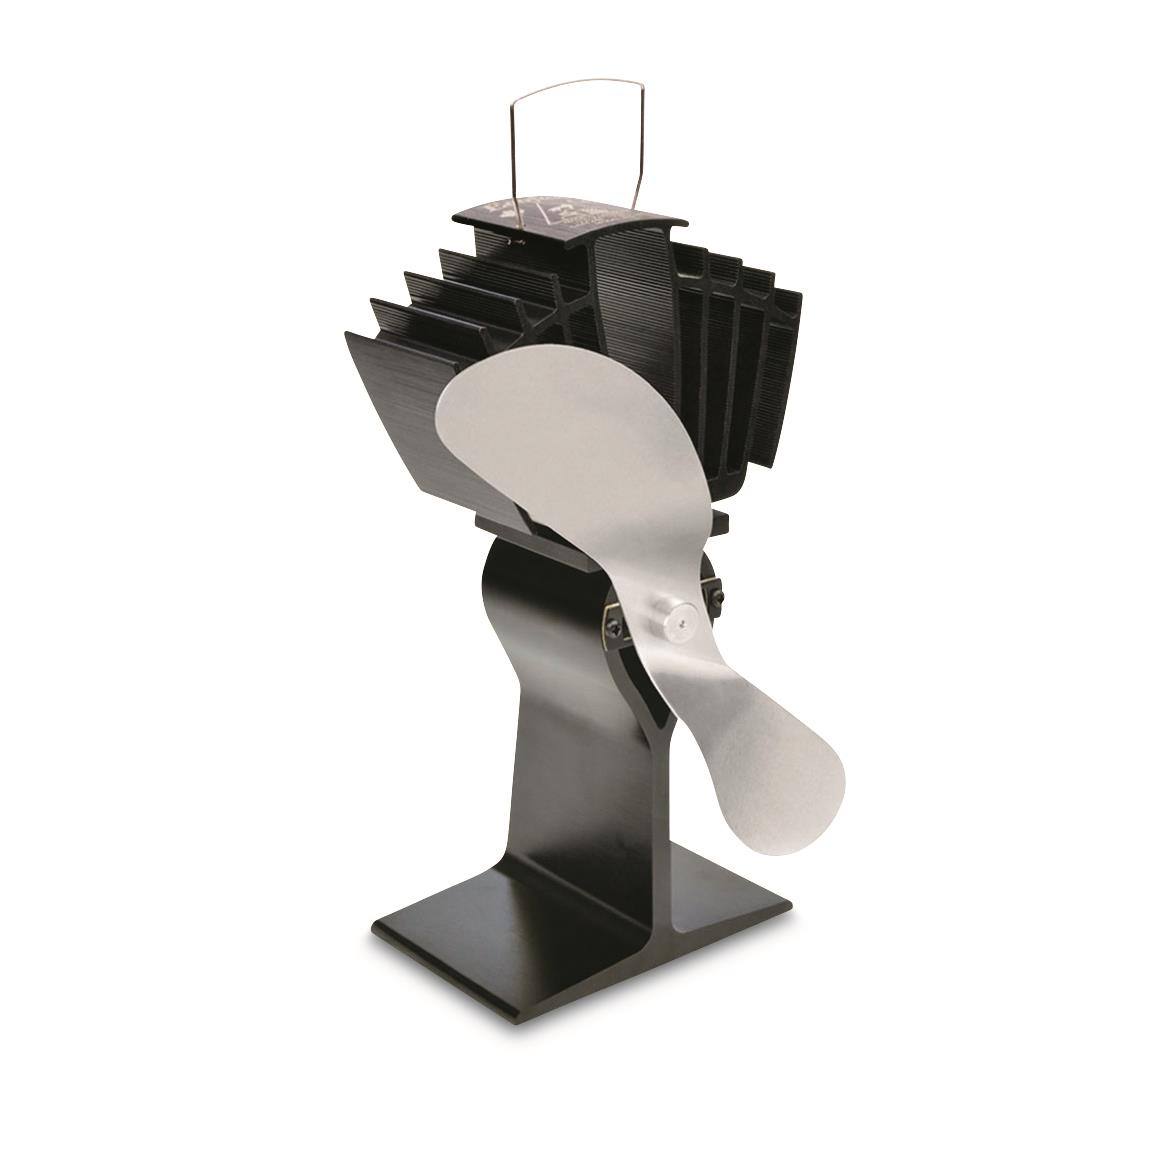 Ecofan AirMax Heat-Powered Wood Stove Fan, Nickel; Efficient and ultra quiet